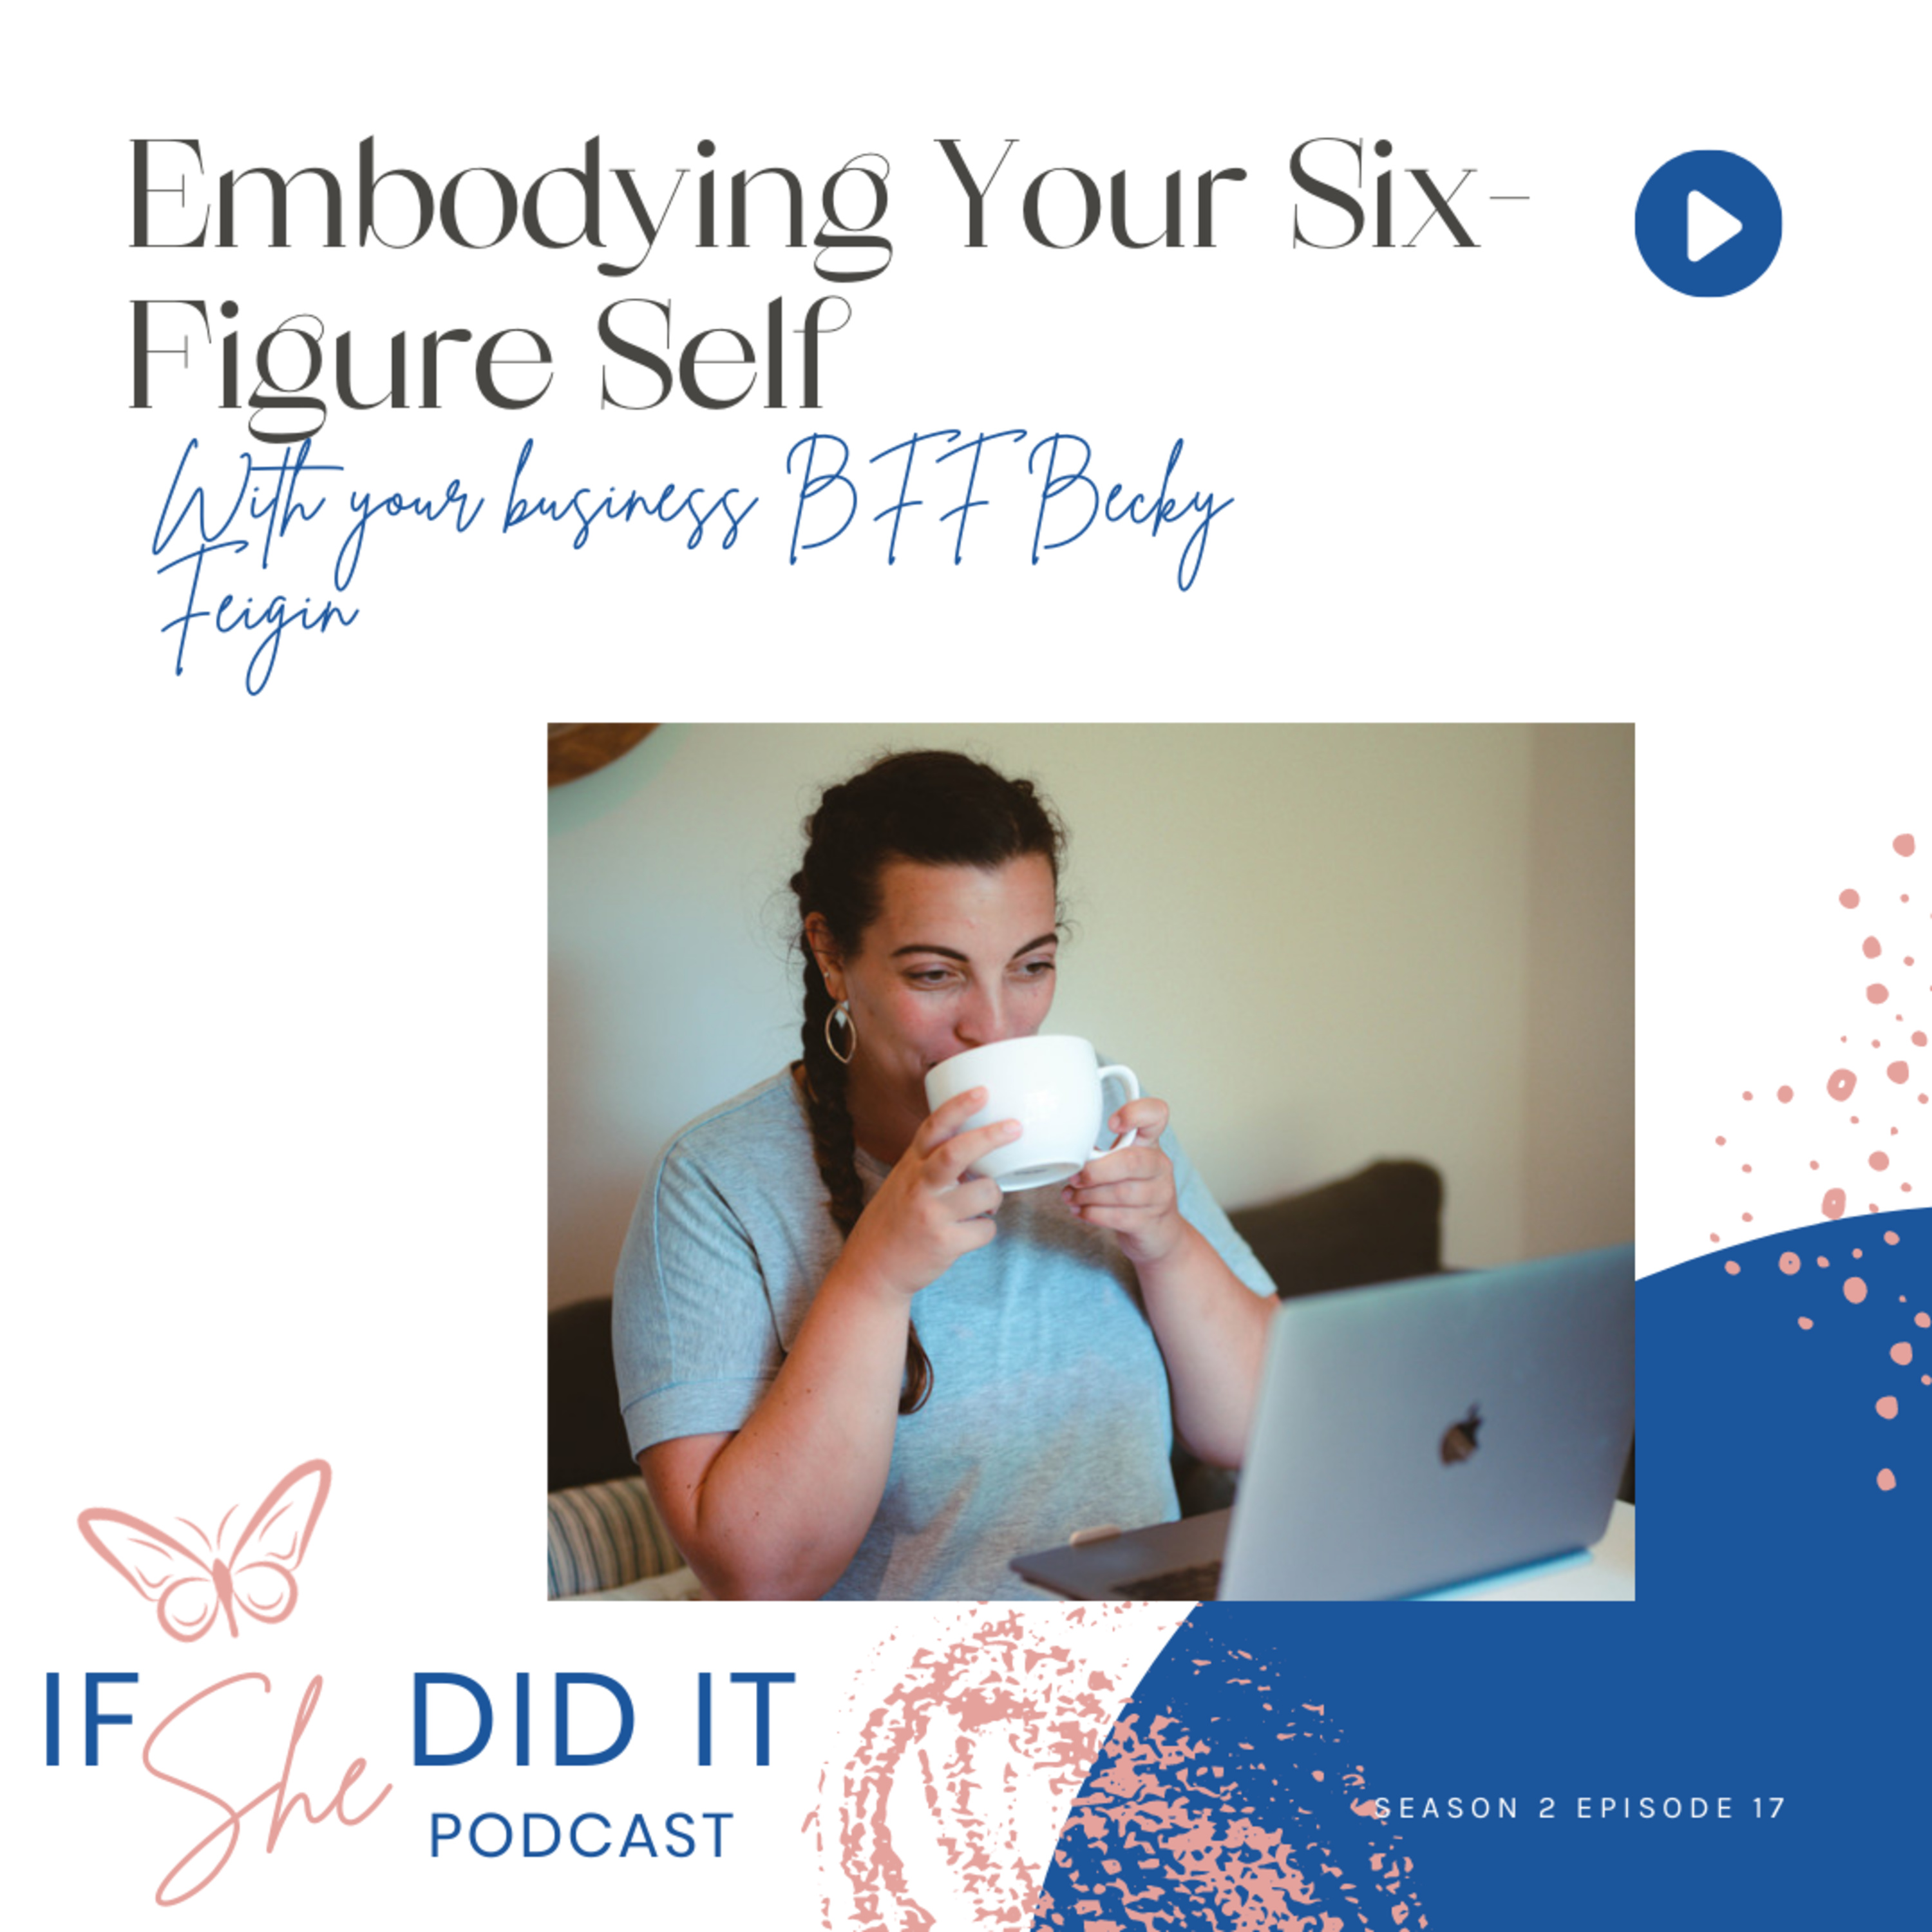 Embodying Your Six-Figure Self